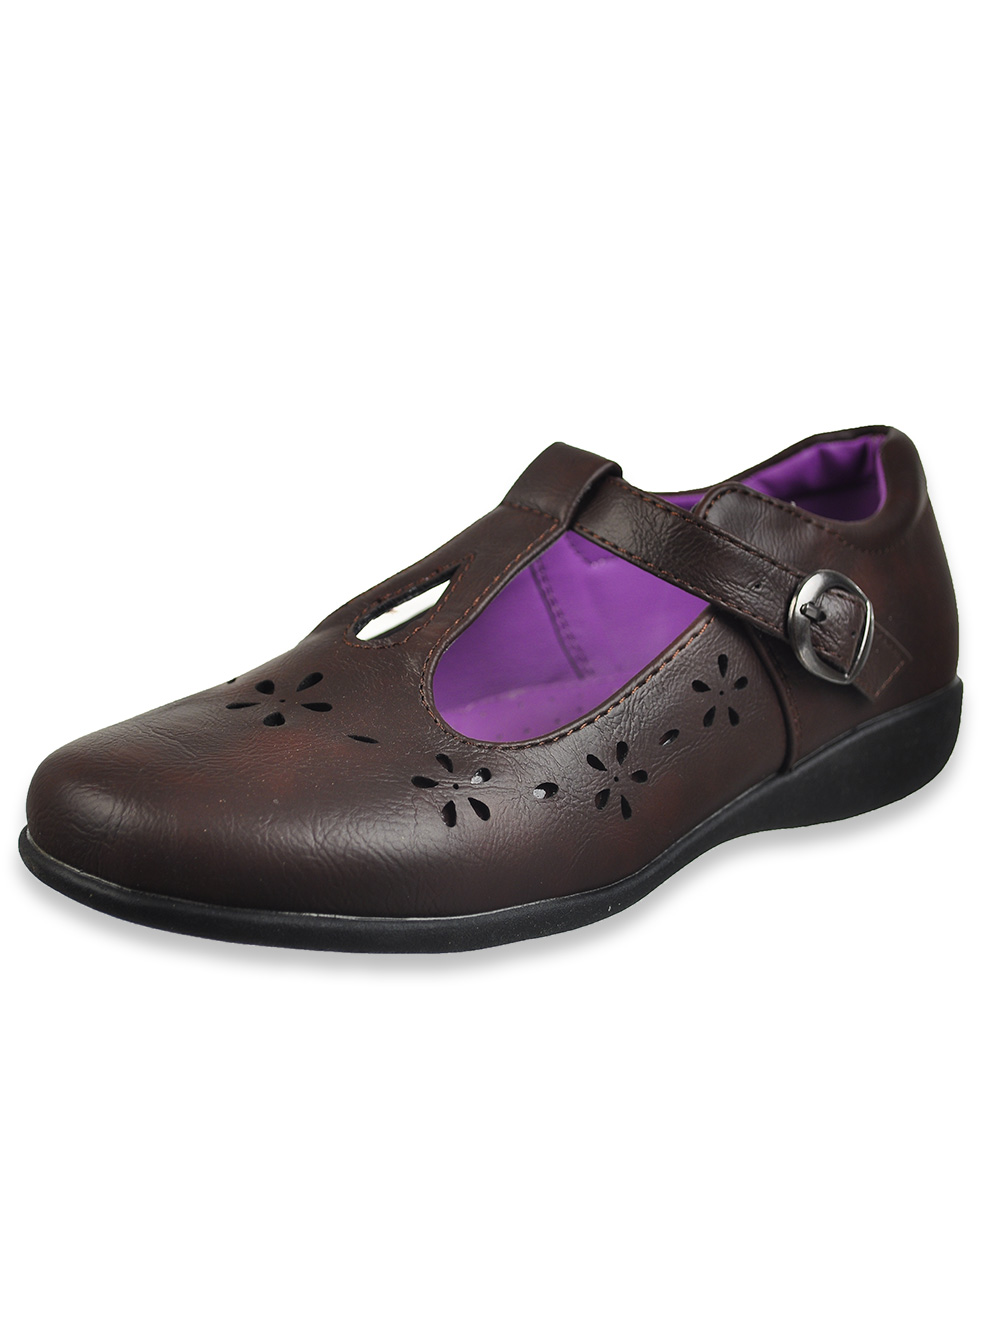 Girls' Mary Jane Shoes by School Rider